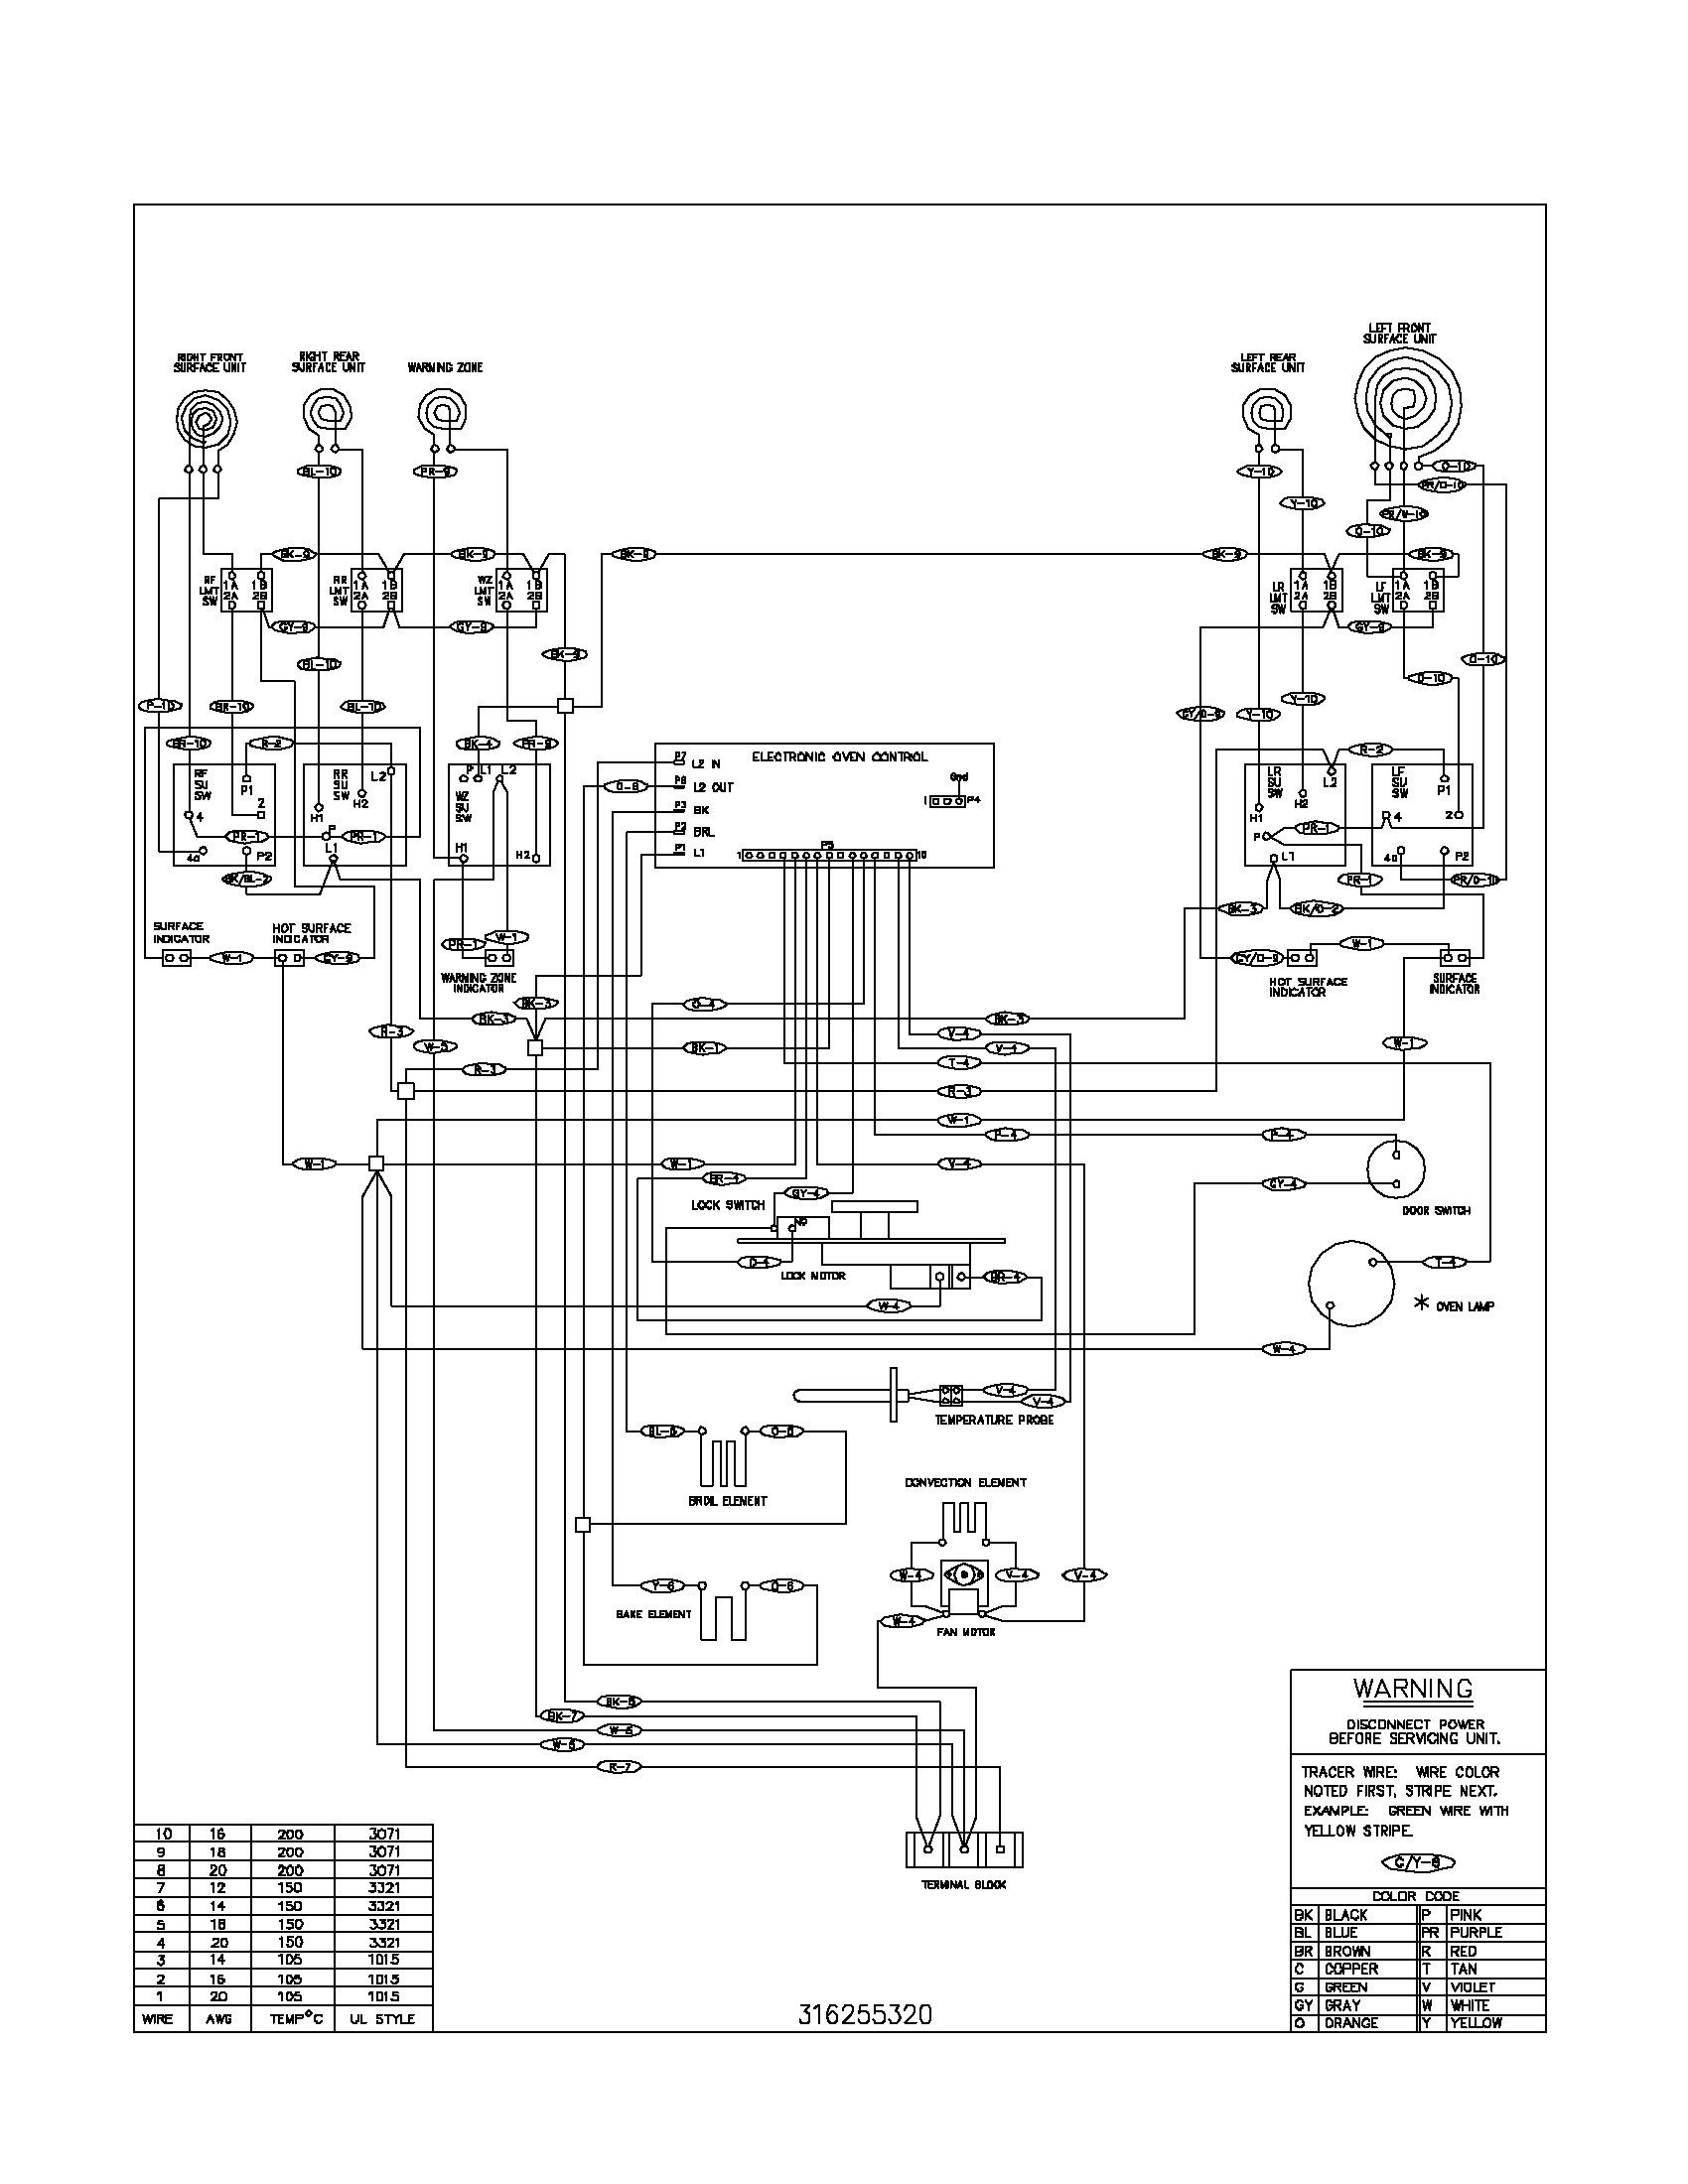 Ad 7924 Wiring Information Diagram And Parts List For Jennair